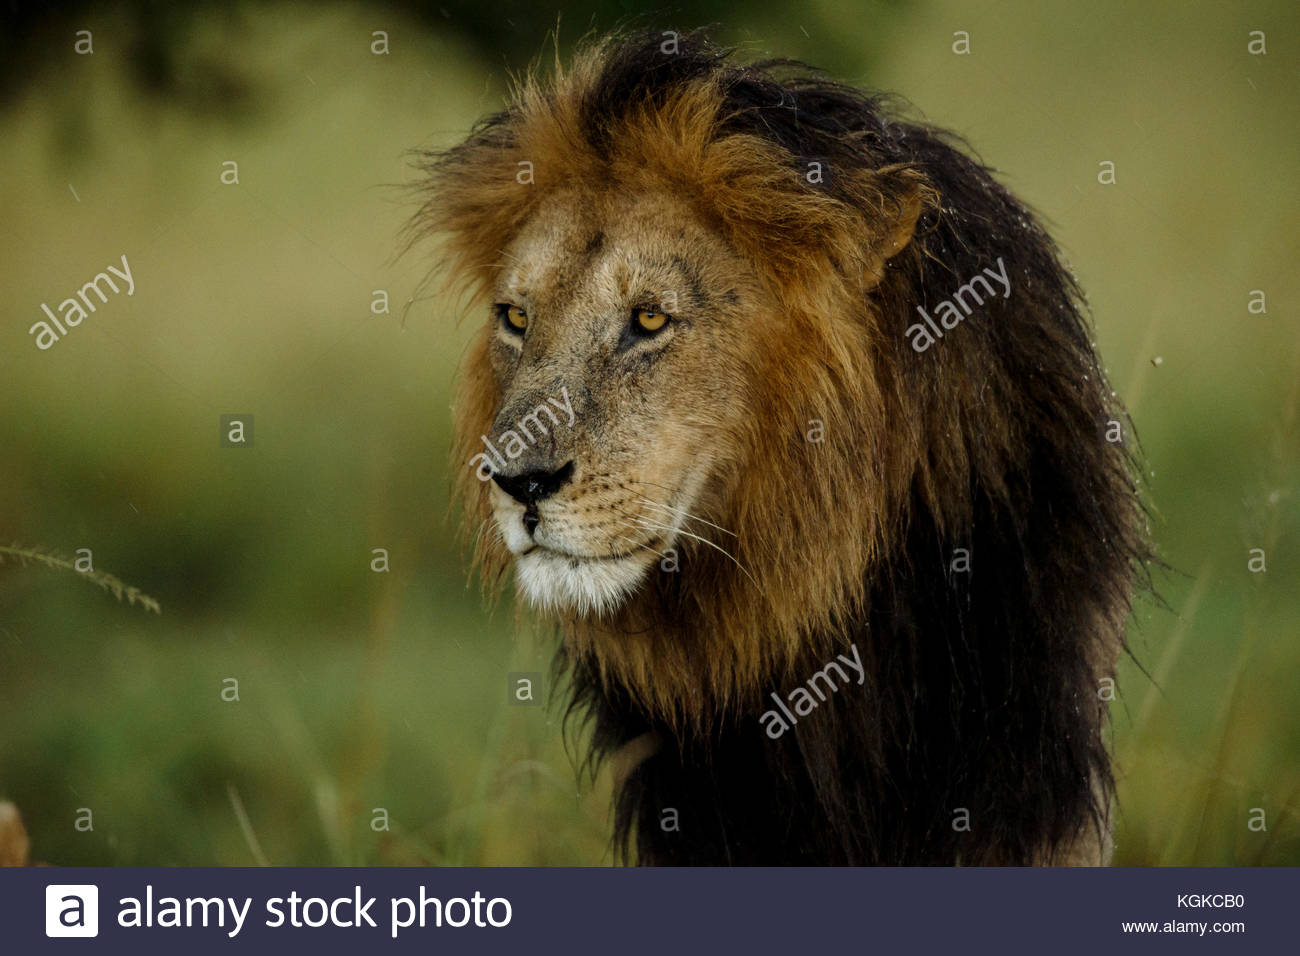 Portrait d'un homme lion, Panthera leo, dans le Masai Mara National Reserve. Photo Stock